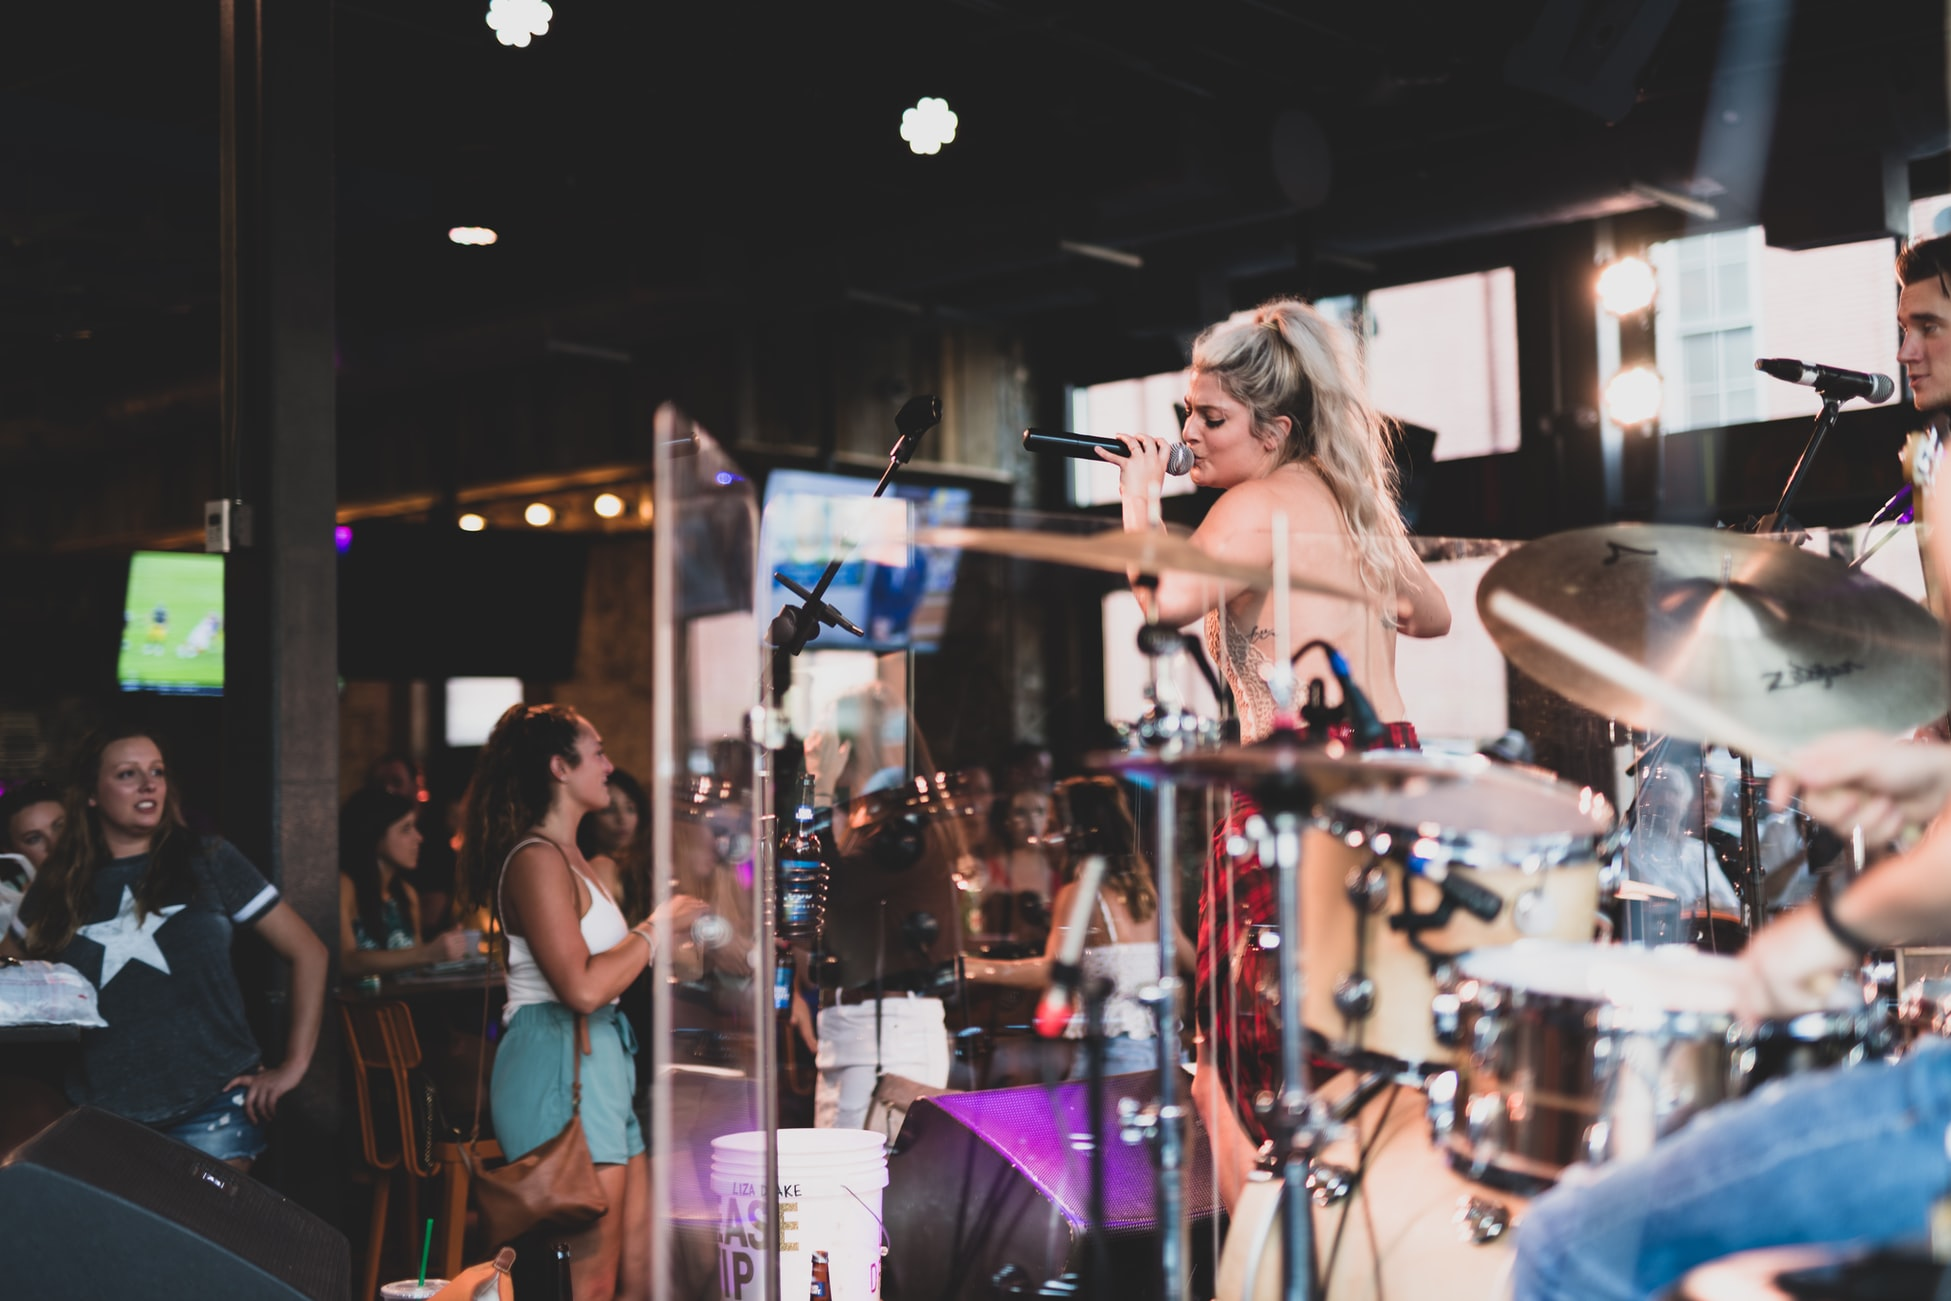 Live music - One of the Things To Do In Nashville